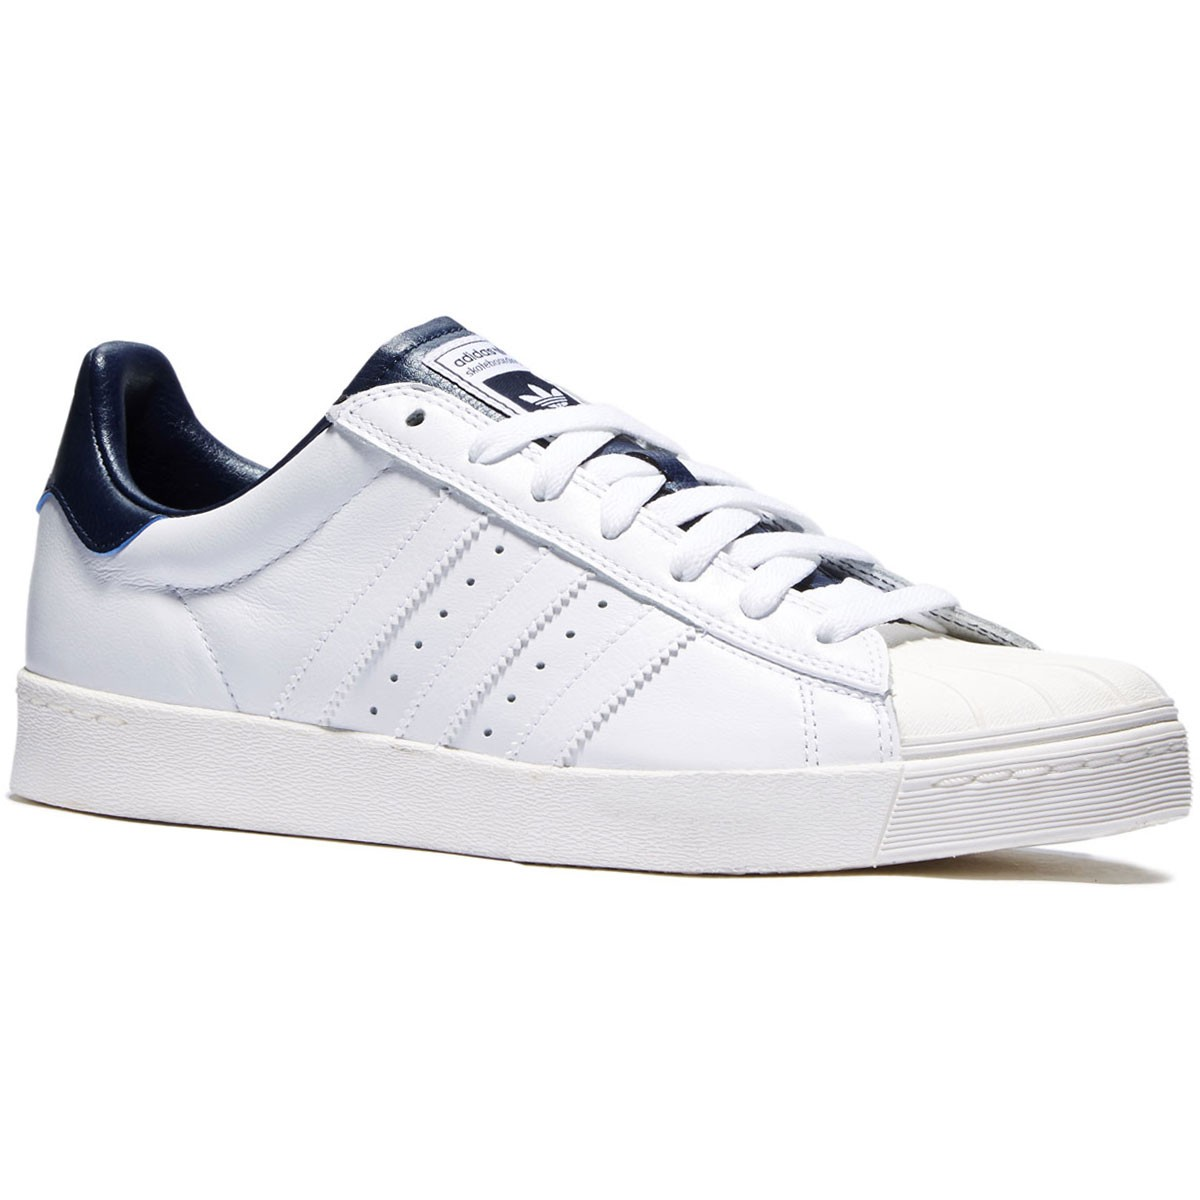 Superstar Vulc ADV Shoes Black Suede, White, White In Stock at The